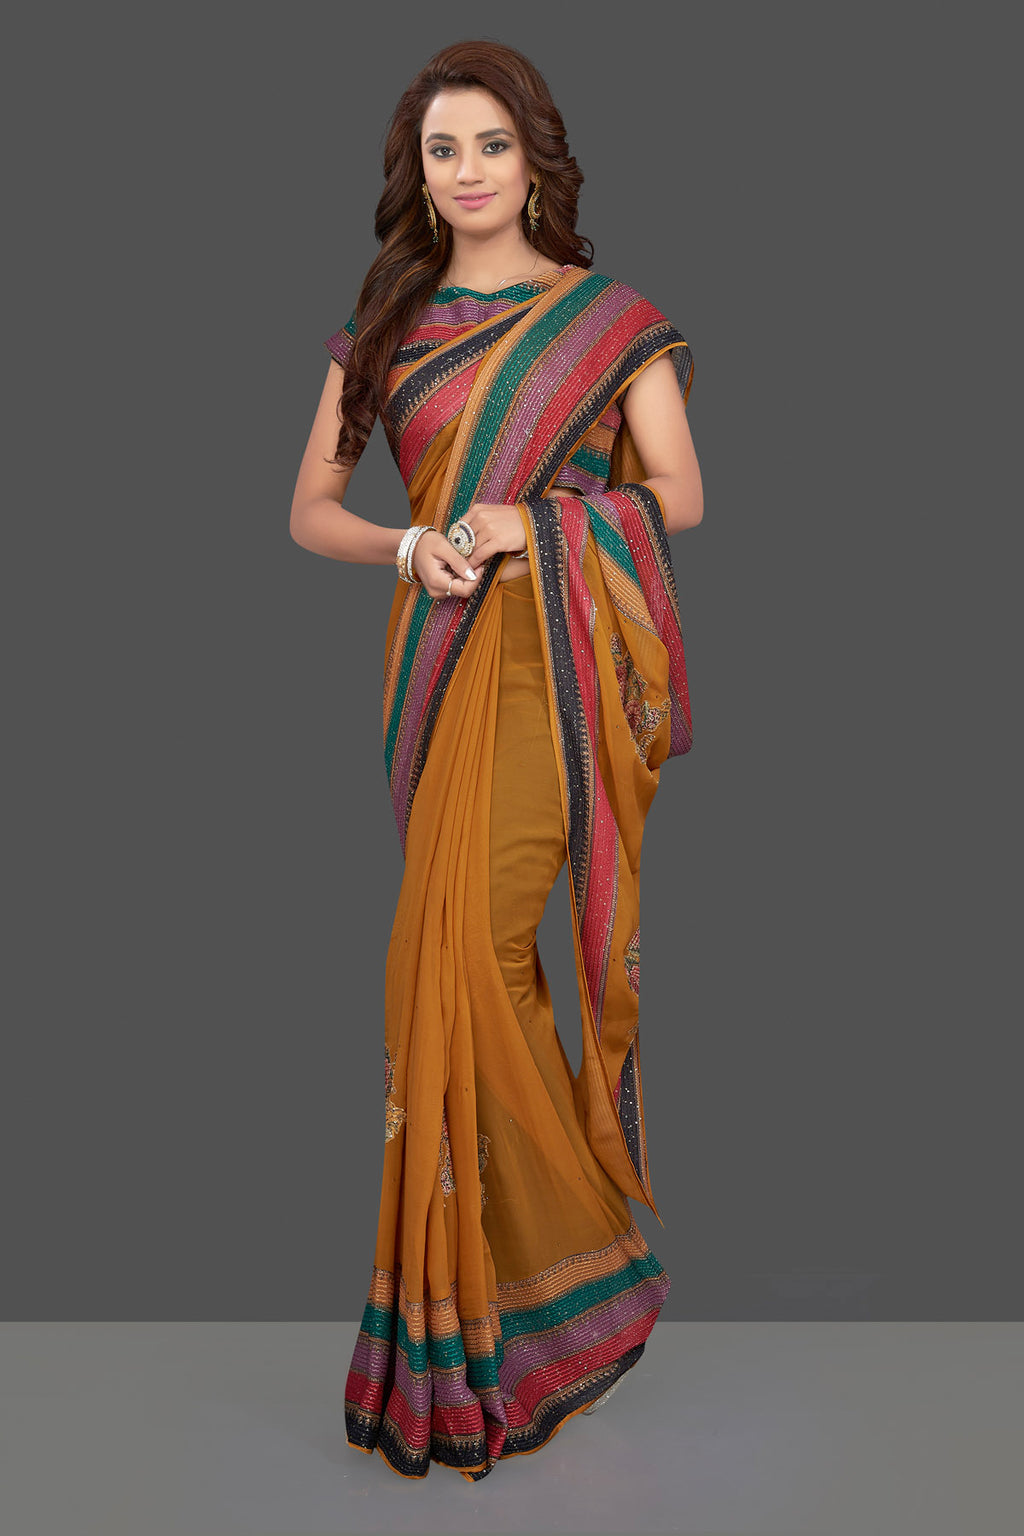 Buy beautiful mustard floral georgette sari online in USA with multicolor saree blouse. Make you presence felt with your Indian style on special occasions in beautiful designer sarees, embroidered sarees, muga sarees, georgette sarees from Pure Elegance Indian fashion store in USA.-full view